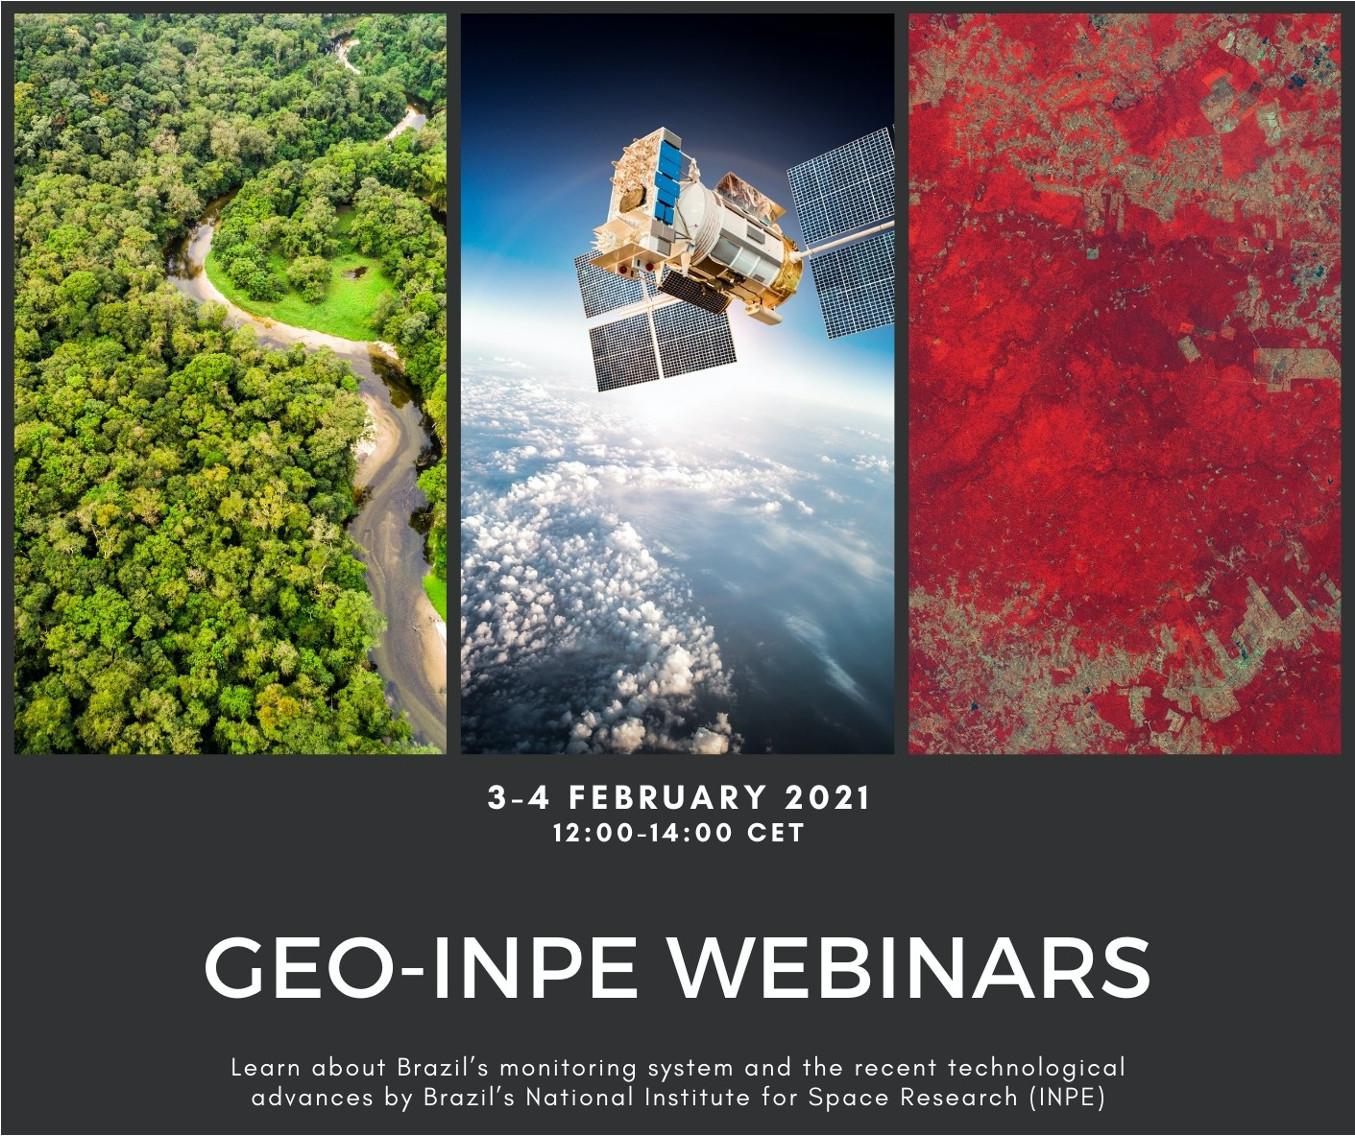 Join GEO-INPE Webinars on Brazil's forest monitoring system